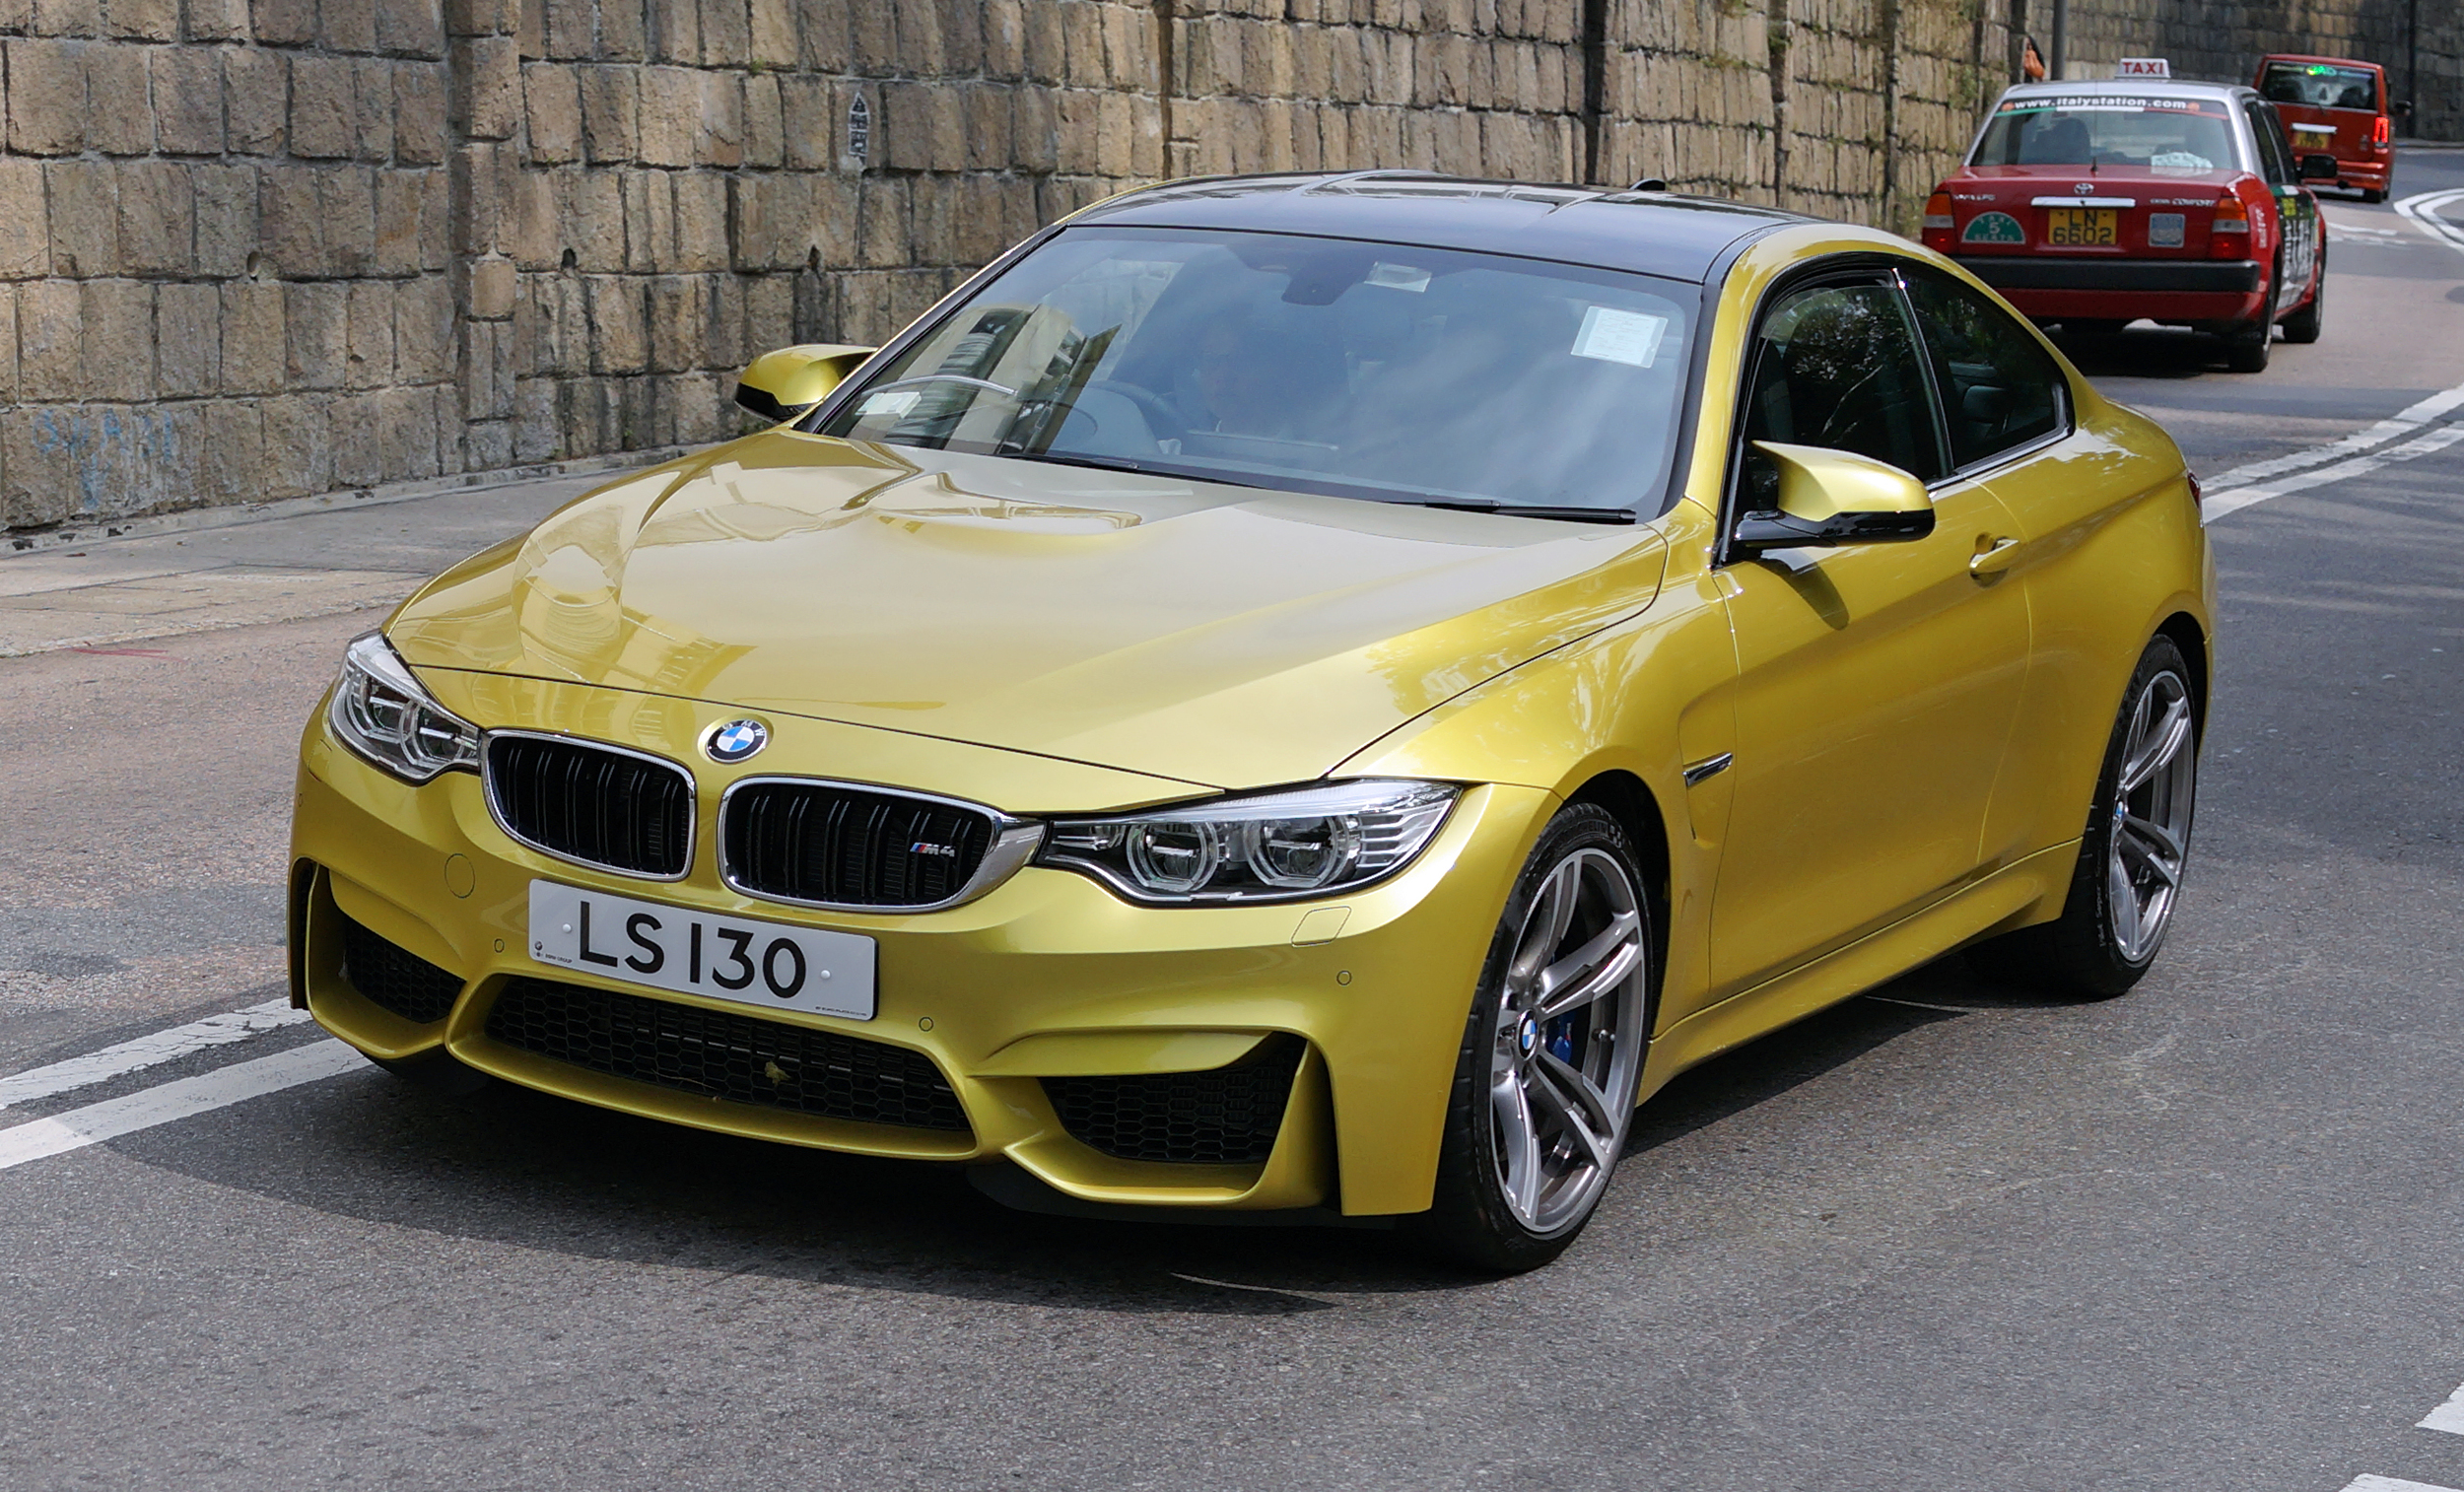 This BMW M series are fast becoming my favourite cars and I just love the colour... very, very cool.